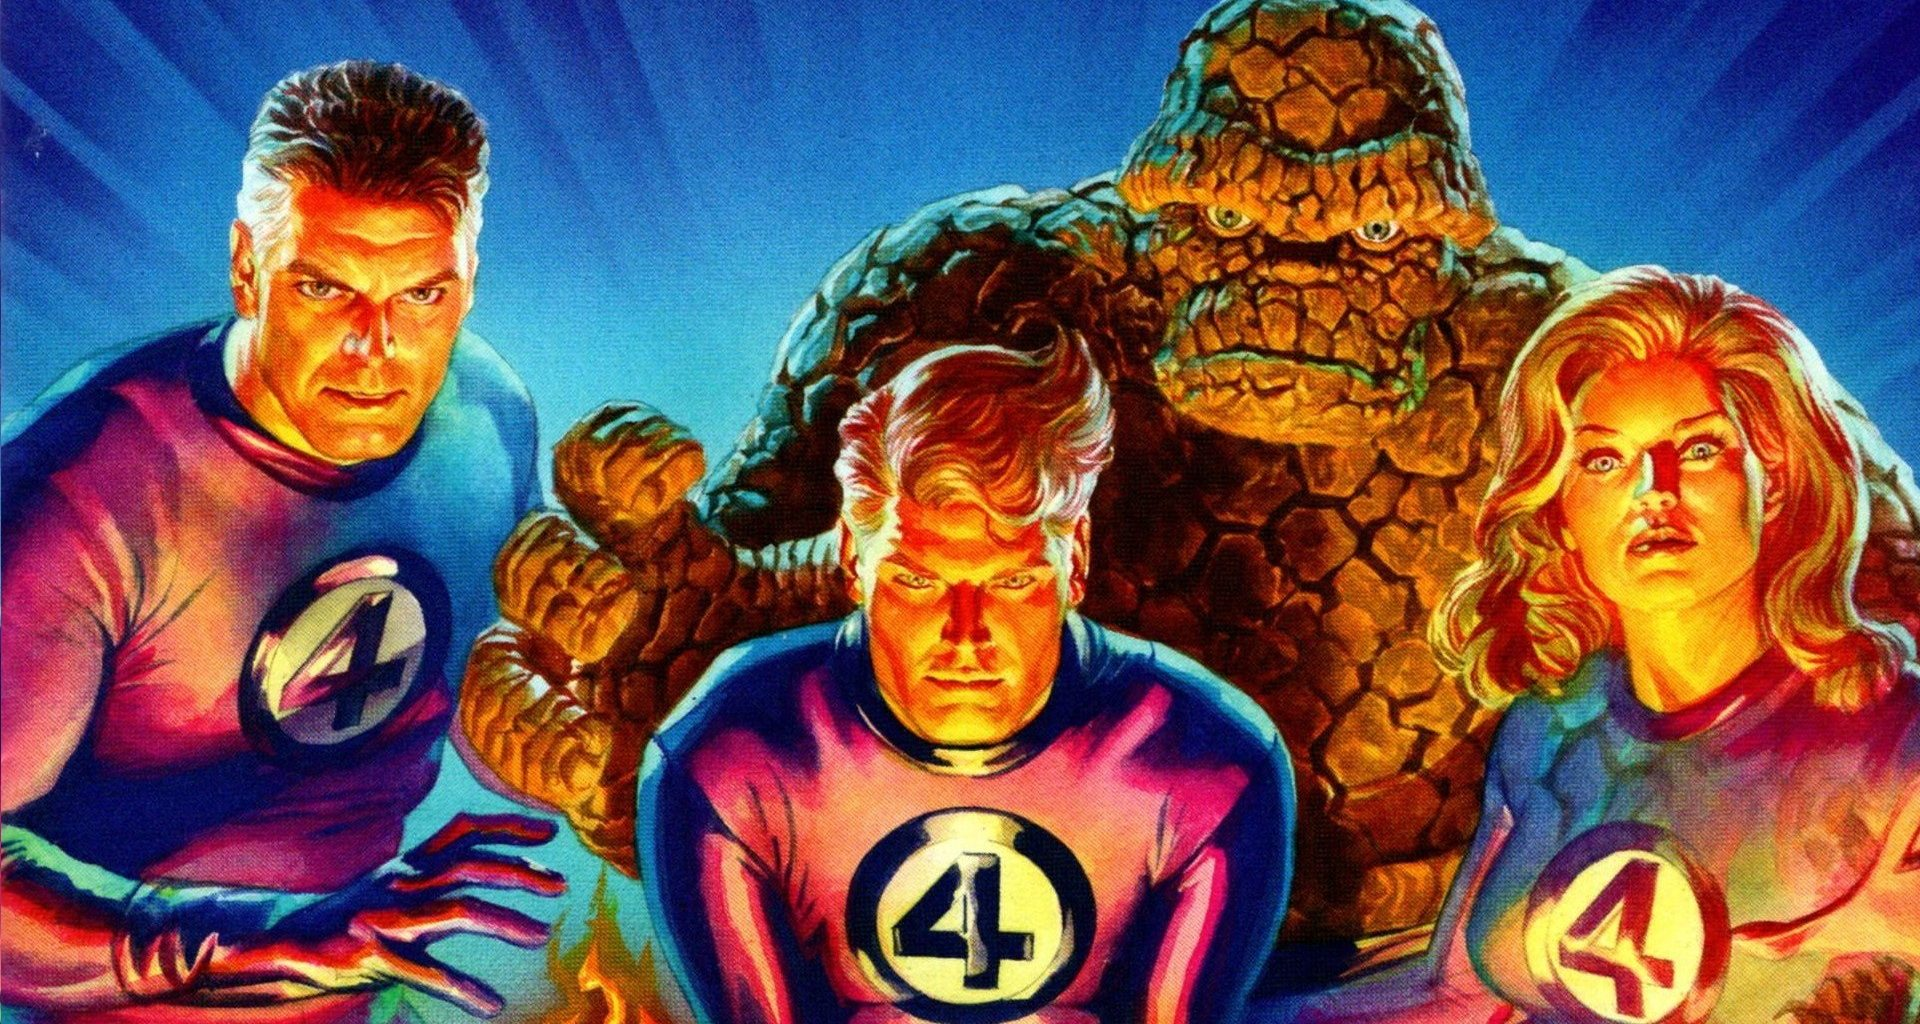 Fantastic Four 1 2018 Alex Ross Variant Cover cover